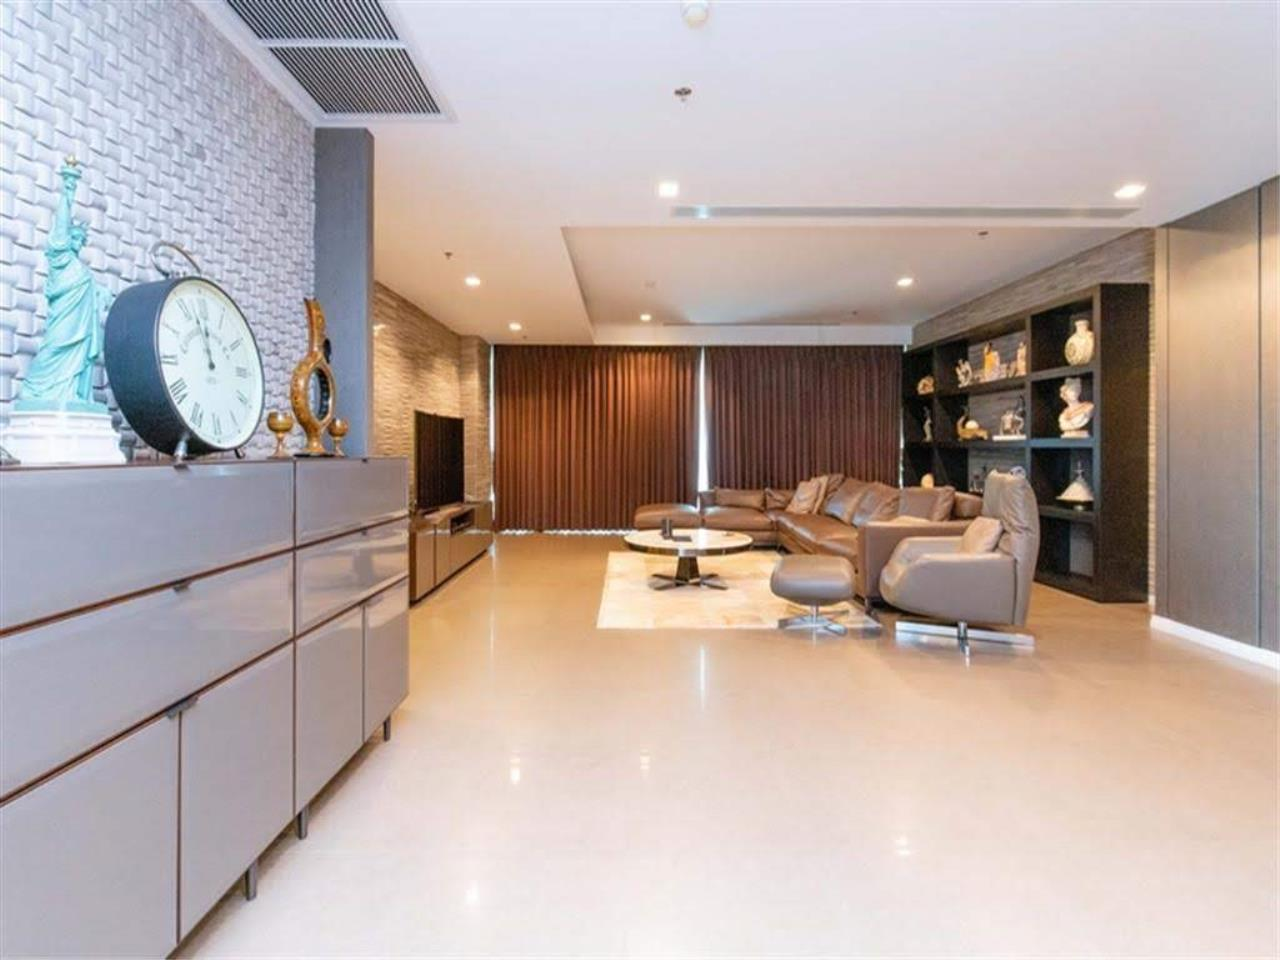 Bestbkkcondos Agency's The River - 233,8 sqm - For Sale : 52 000 000 THB - 3 Bedrooms 17